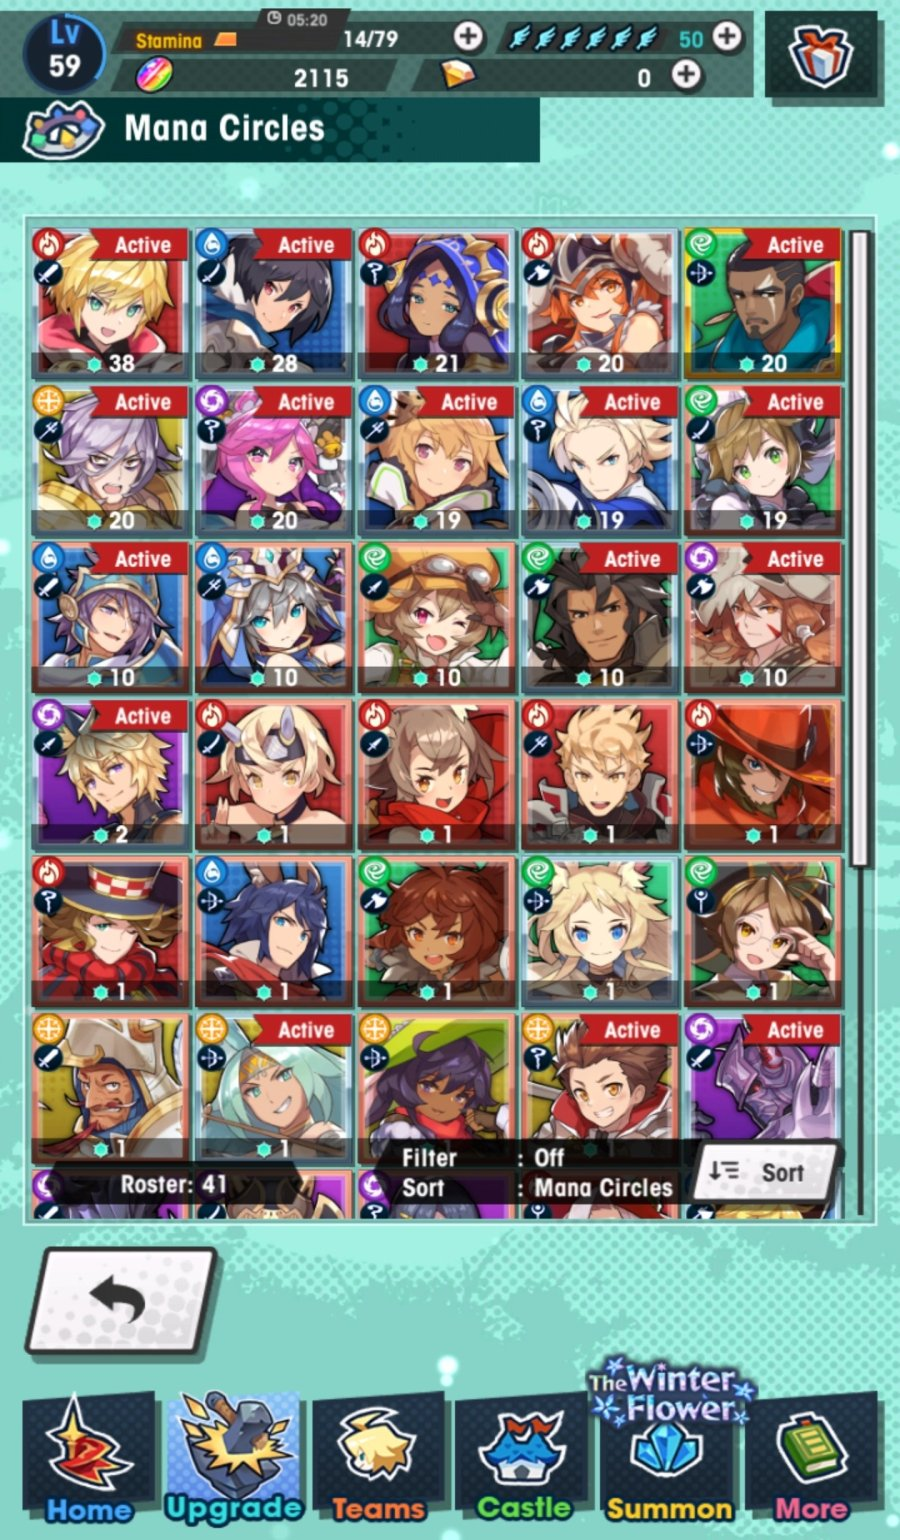 Dragalia Lost mana circles guide